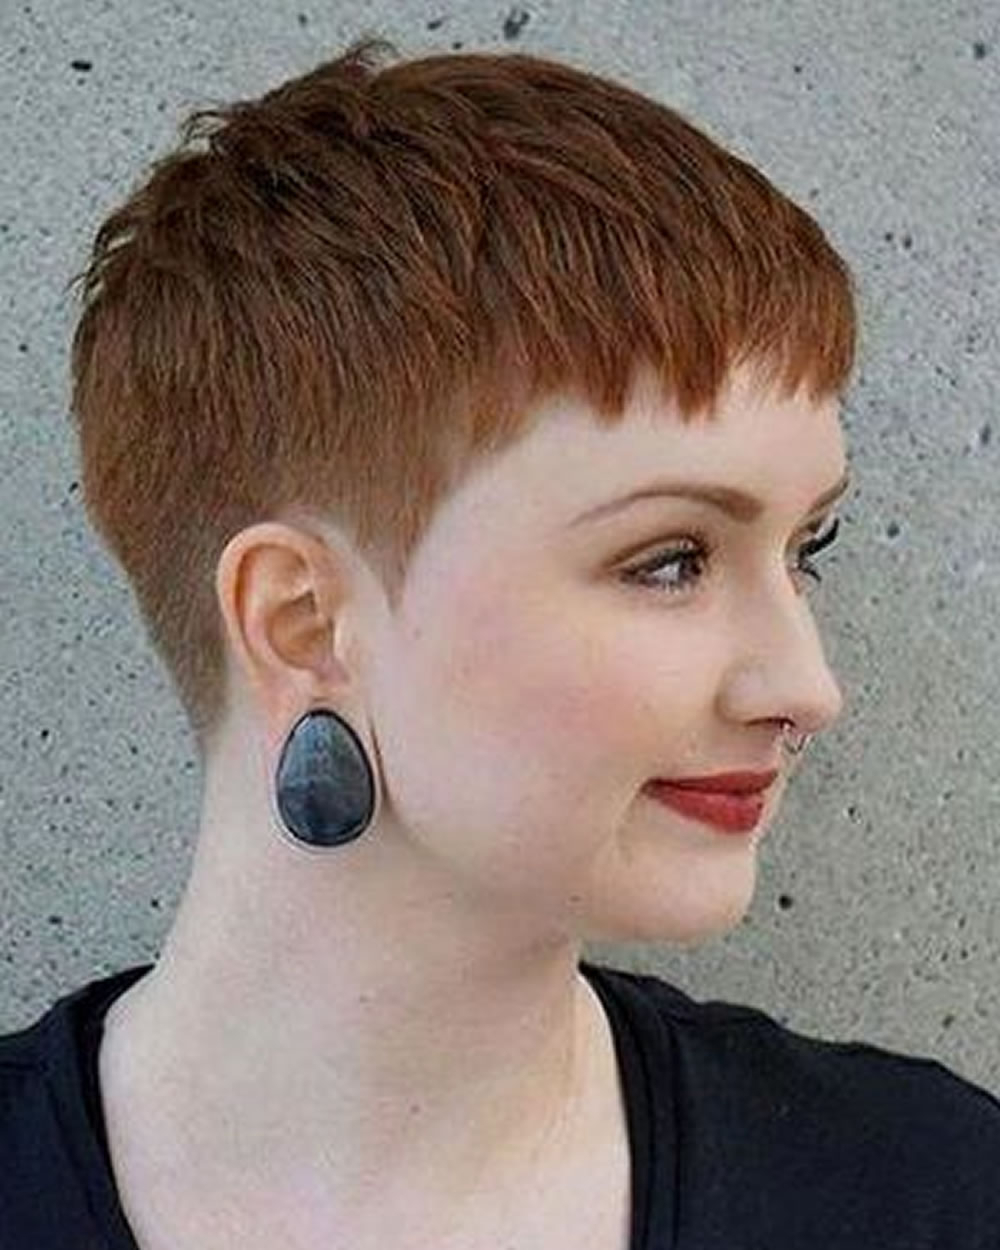 Pixie Hairstyles For Round Face And Thin Hair 2018 – Hairstyles Inside Super Short Hairstyles For Round Faces (View 17 of 25)